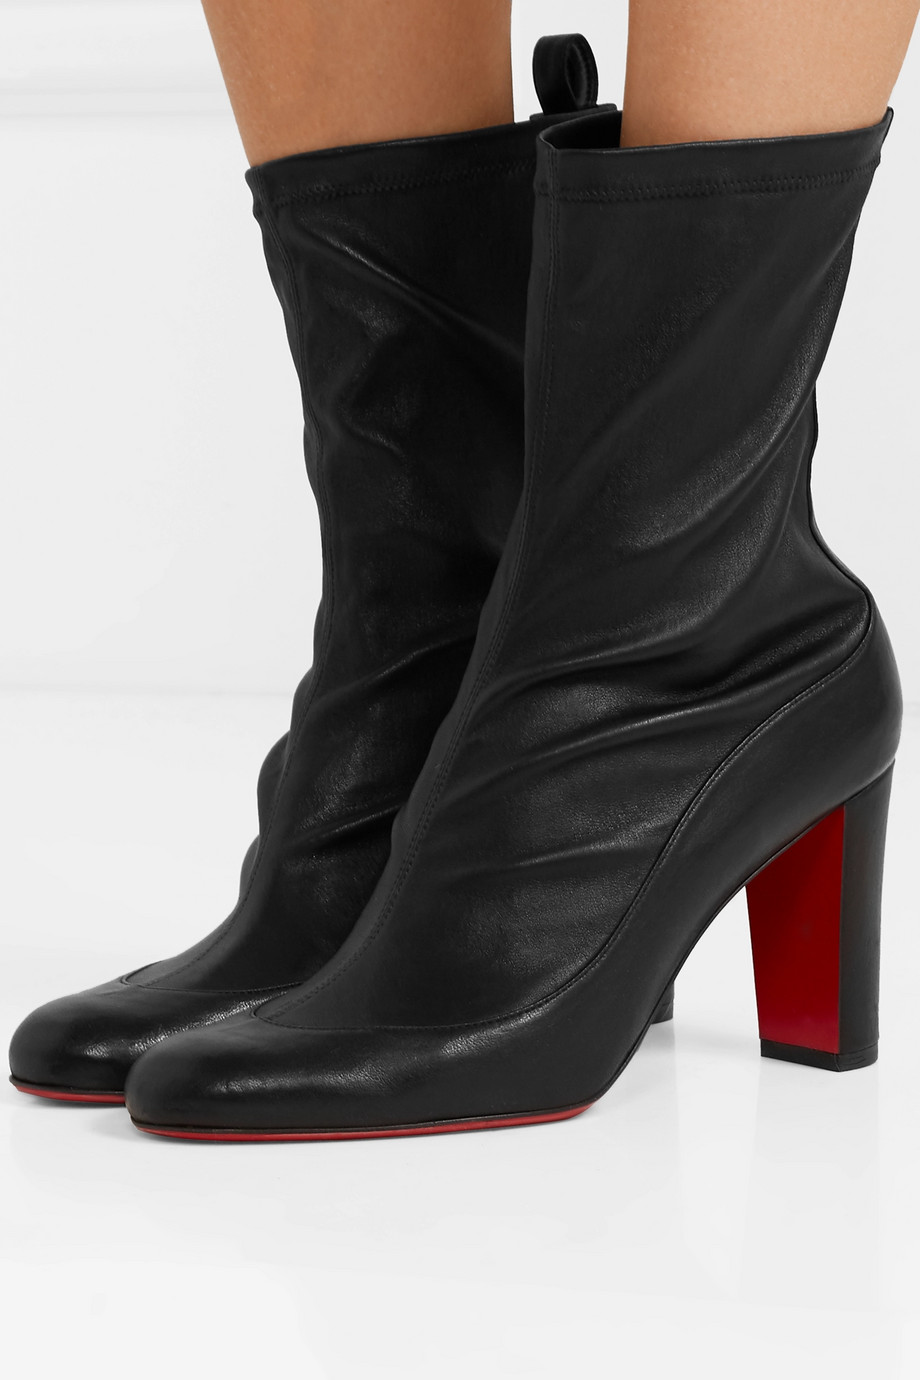 Christian Louboutin Gena 85 stretch-leather sock boots